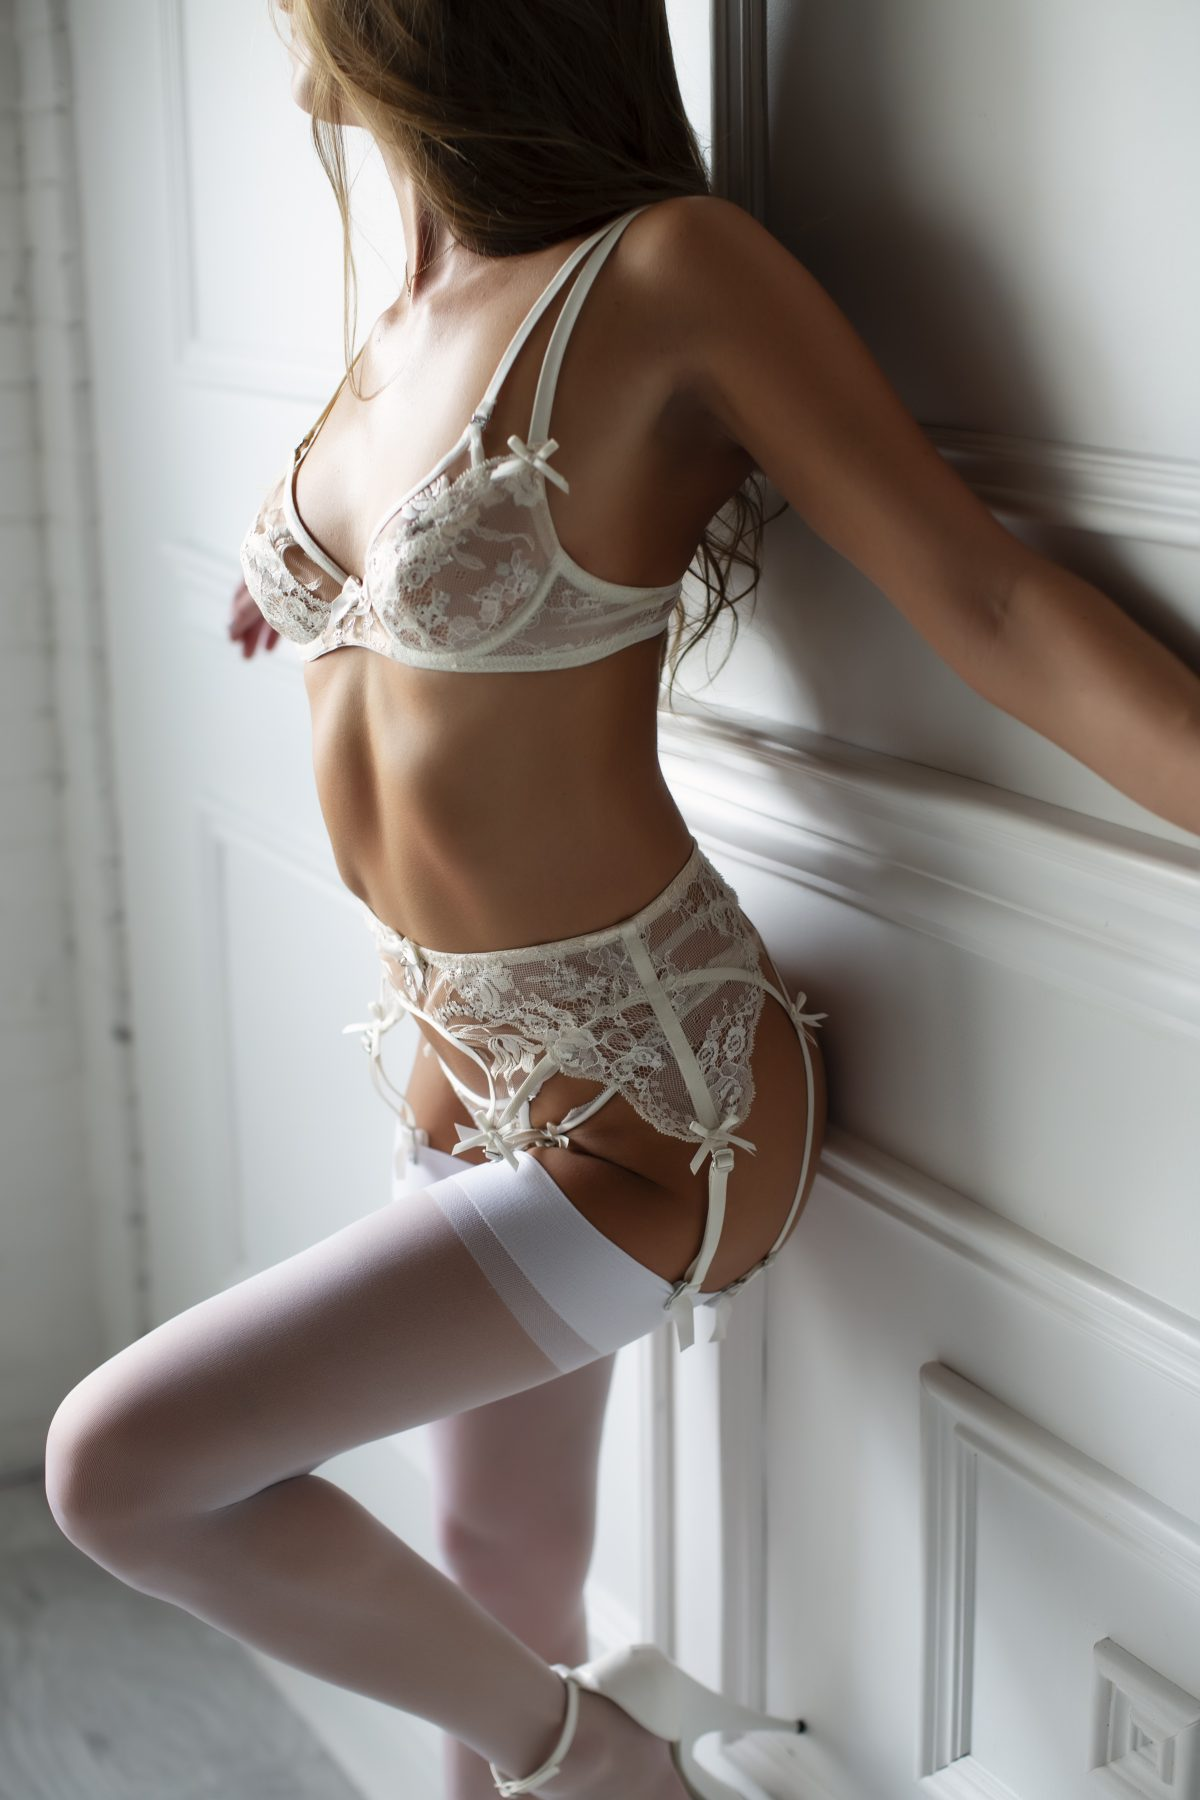 Toronto escorts companion upscale Darcy Interests Duo Couple-friendly Non-smoking Age Mature Figure Slender Tall Breasts Natural Hair Brunette Ethnicity European Tattoos None New Photos